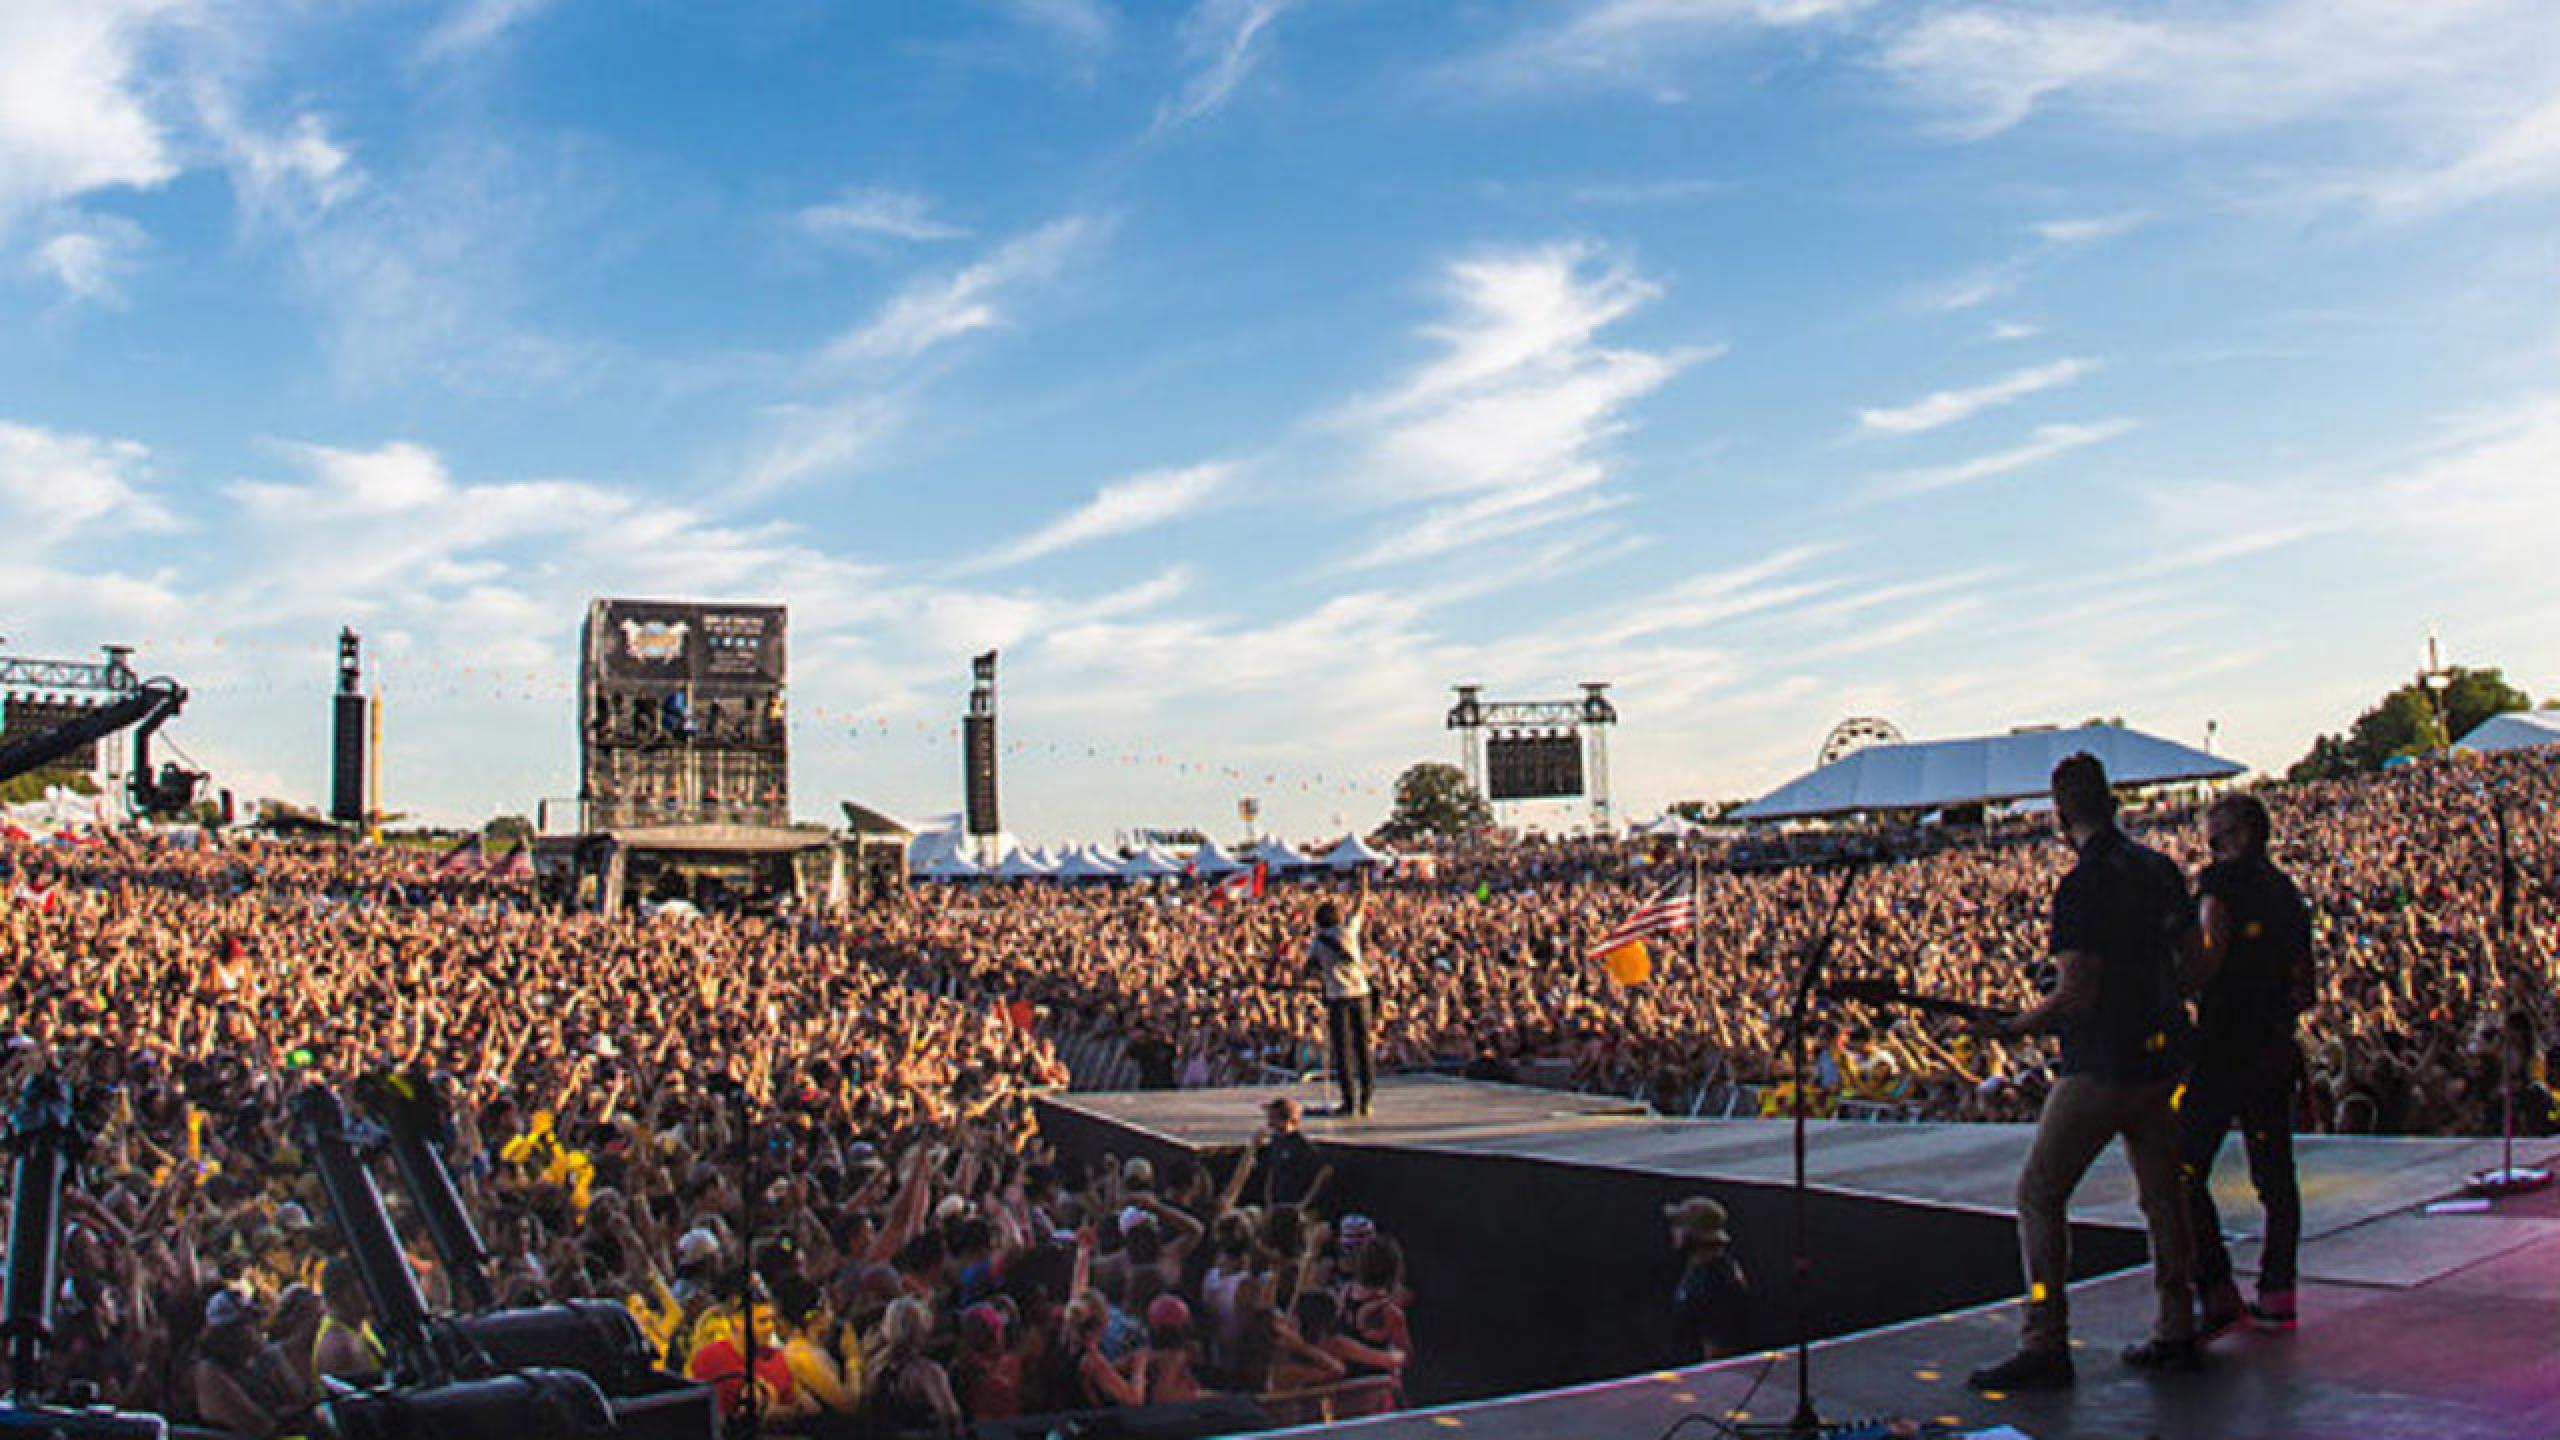 Faster Horses 2020 Tickets Lineup Bands For Faster